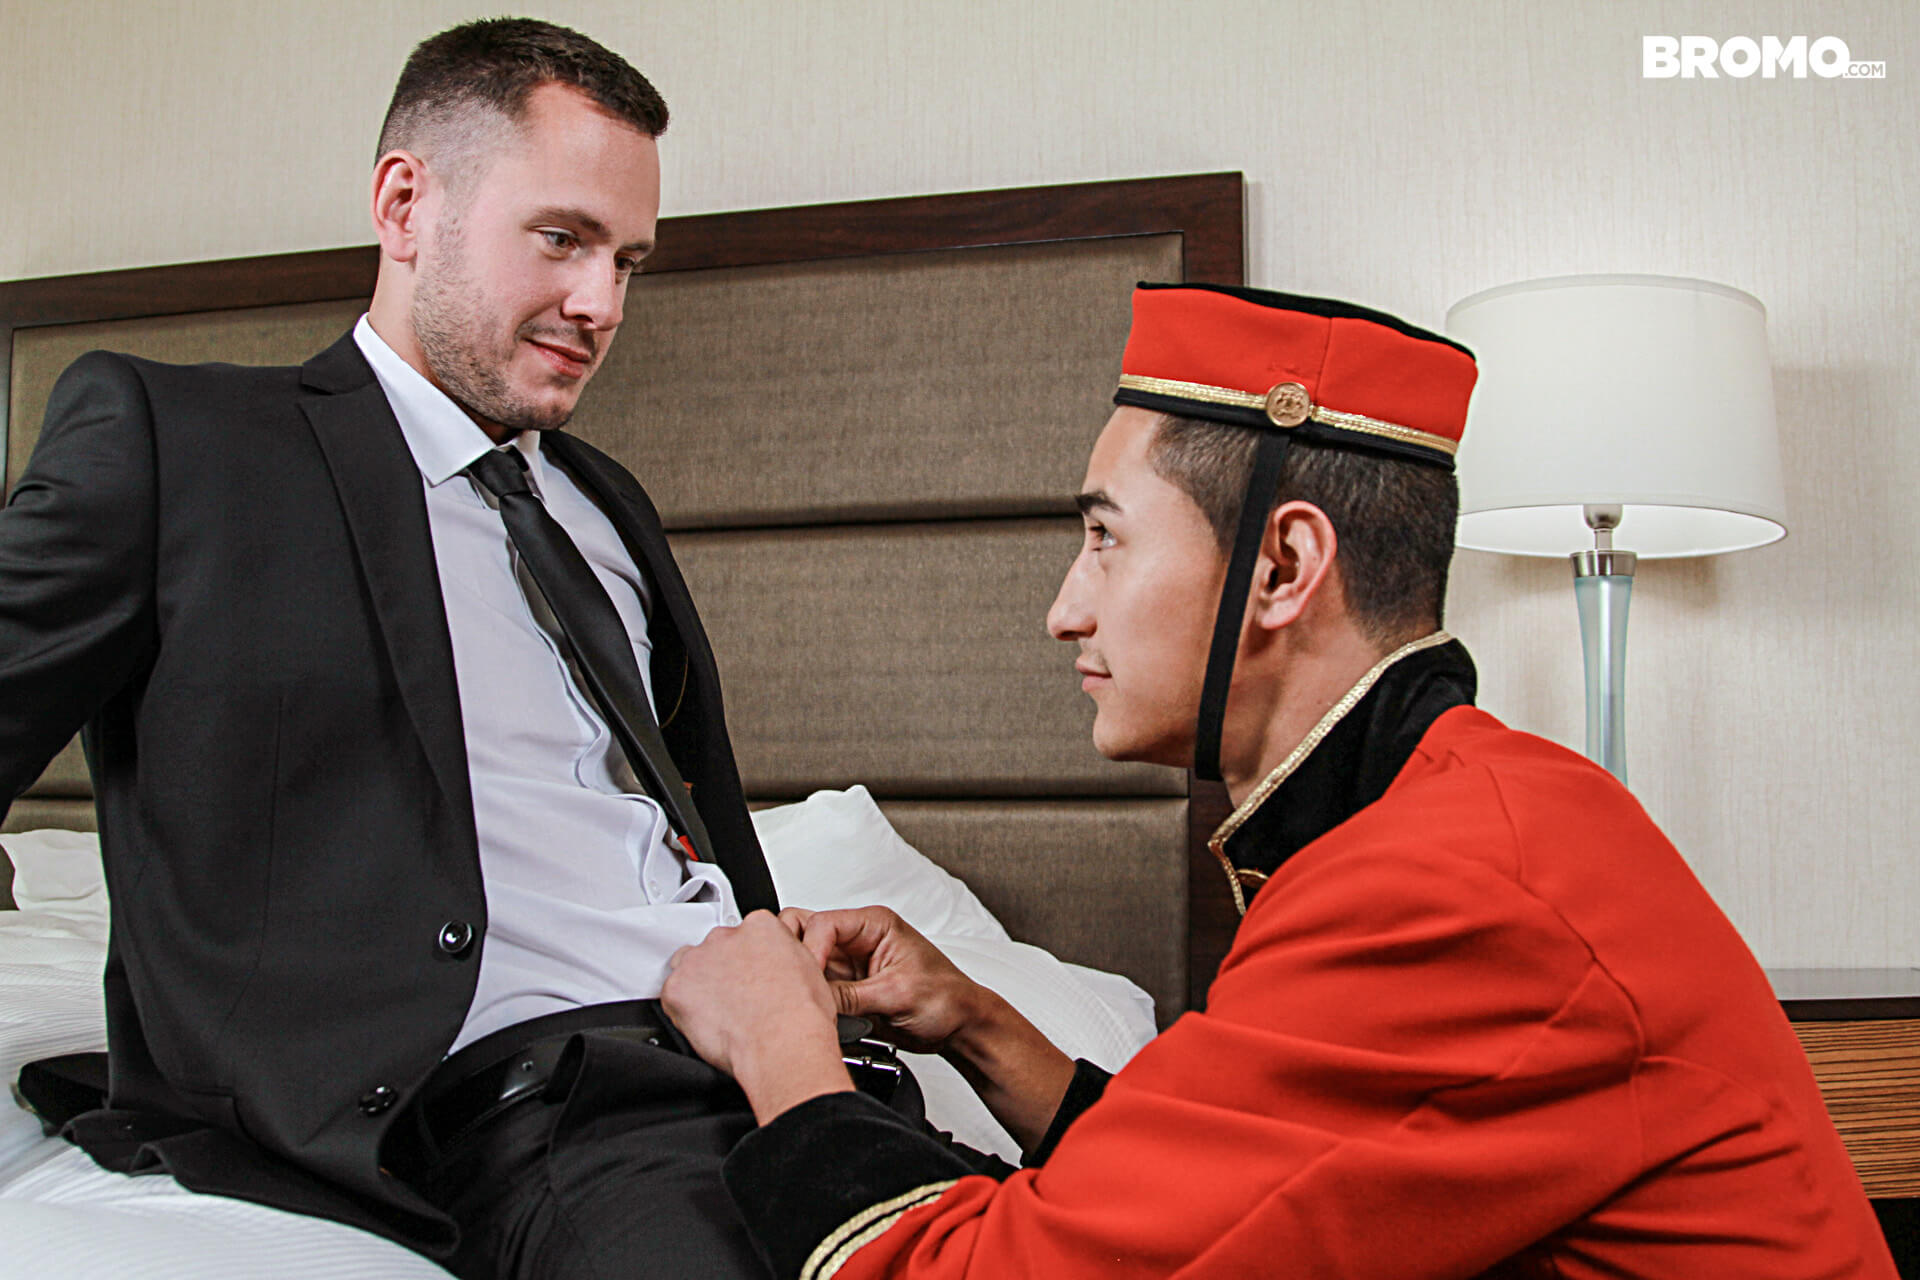 bromo bellboys part 1 chandler banks brenner bolton gay porn blog image 15